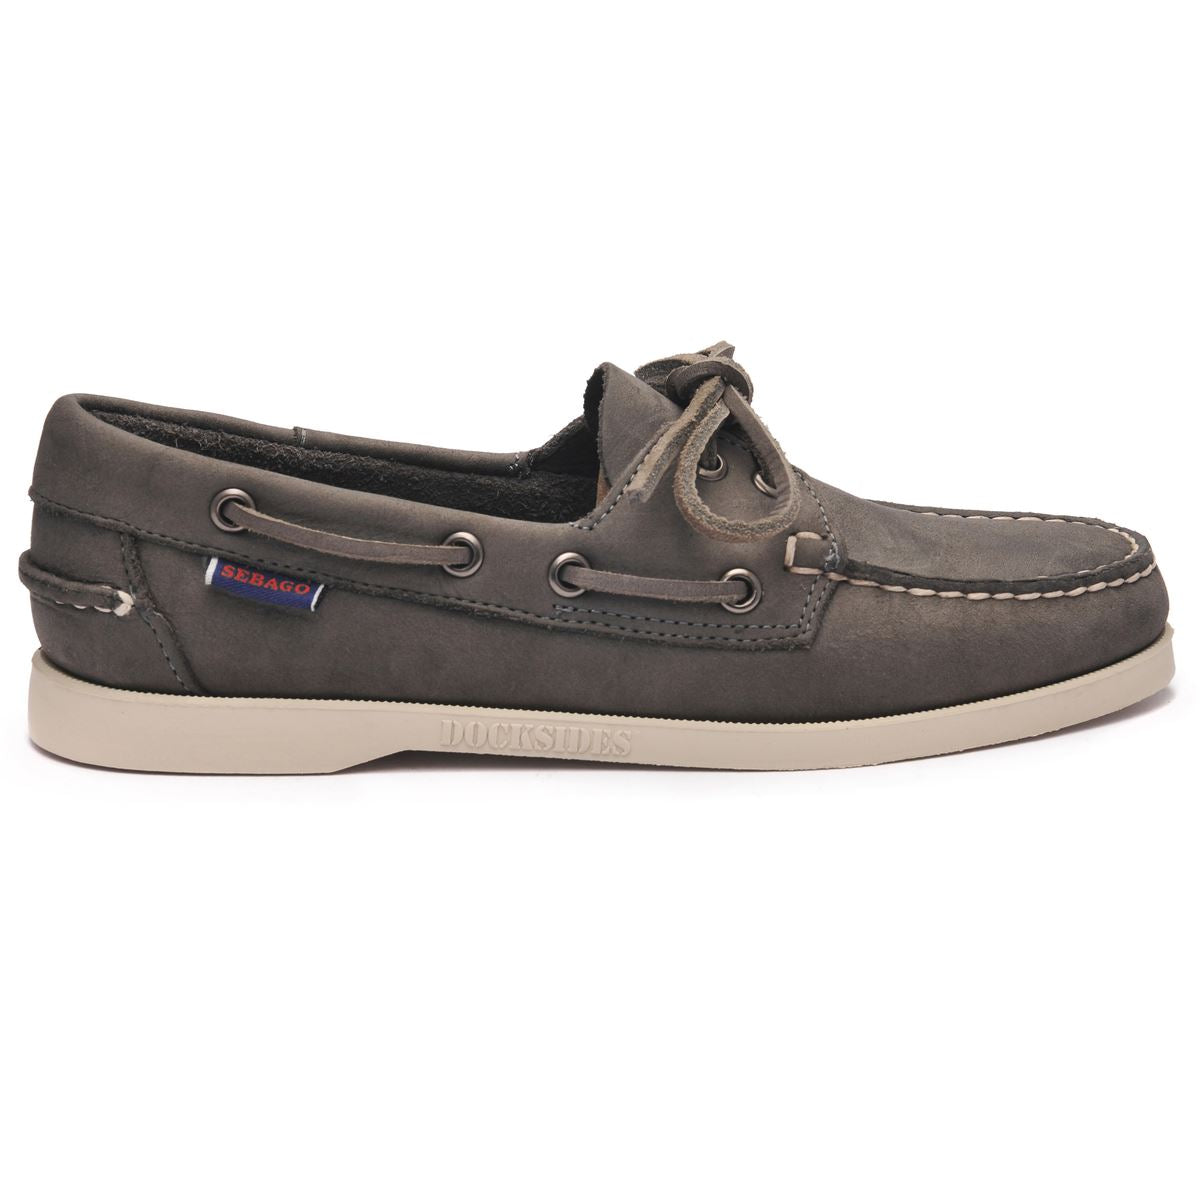 PORTLAND CRAZY HORSE - W - DARK GREY